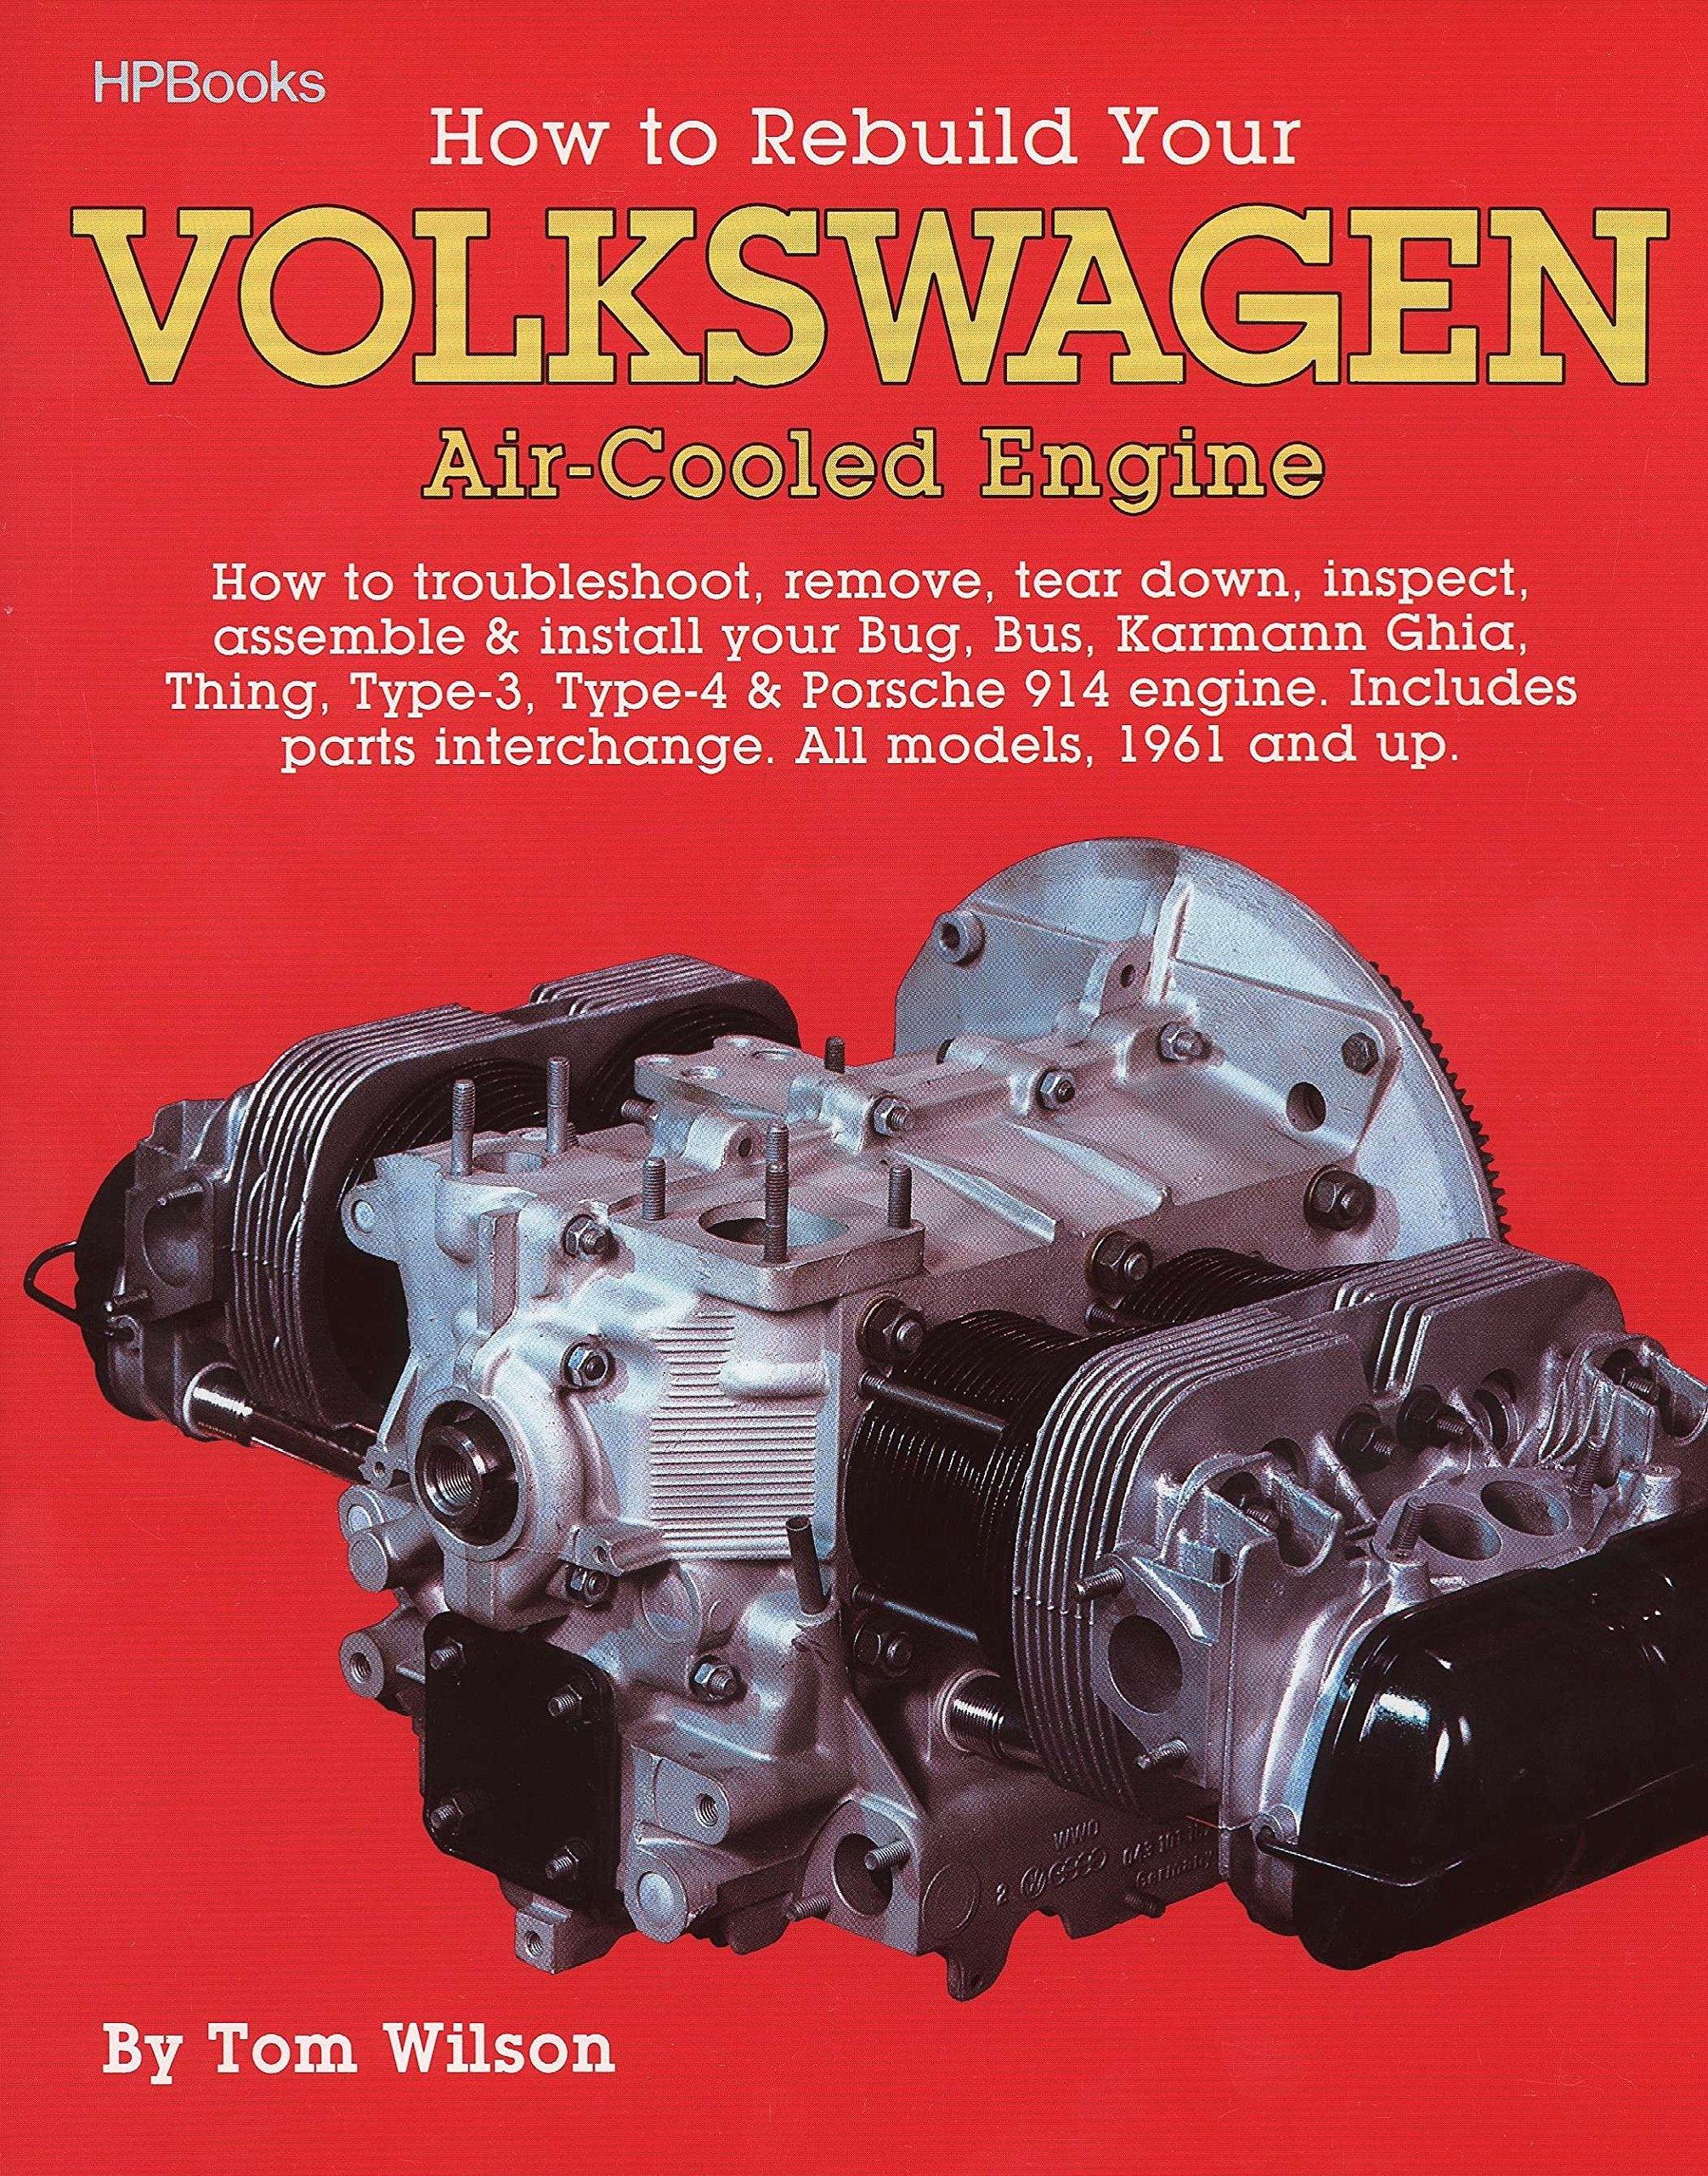 How to Rebuild Your Volkswagen air-Cooled Engine (All models, 1961 and up):  Tom Wilson: 0075478002252: Amazon.com: Books